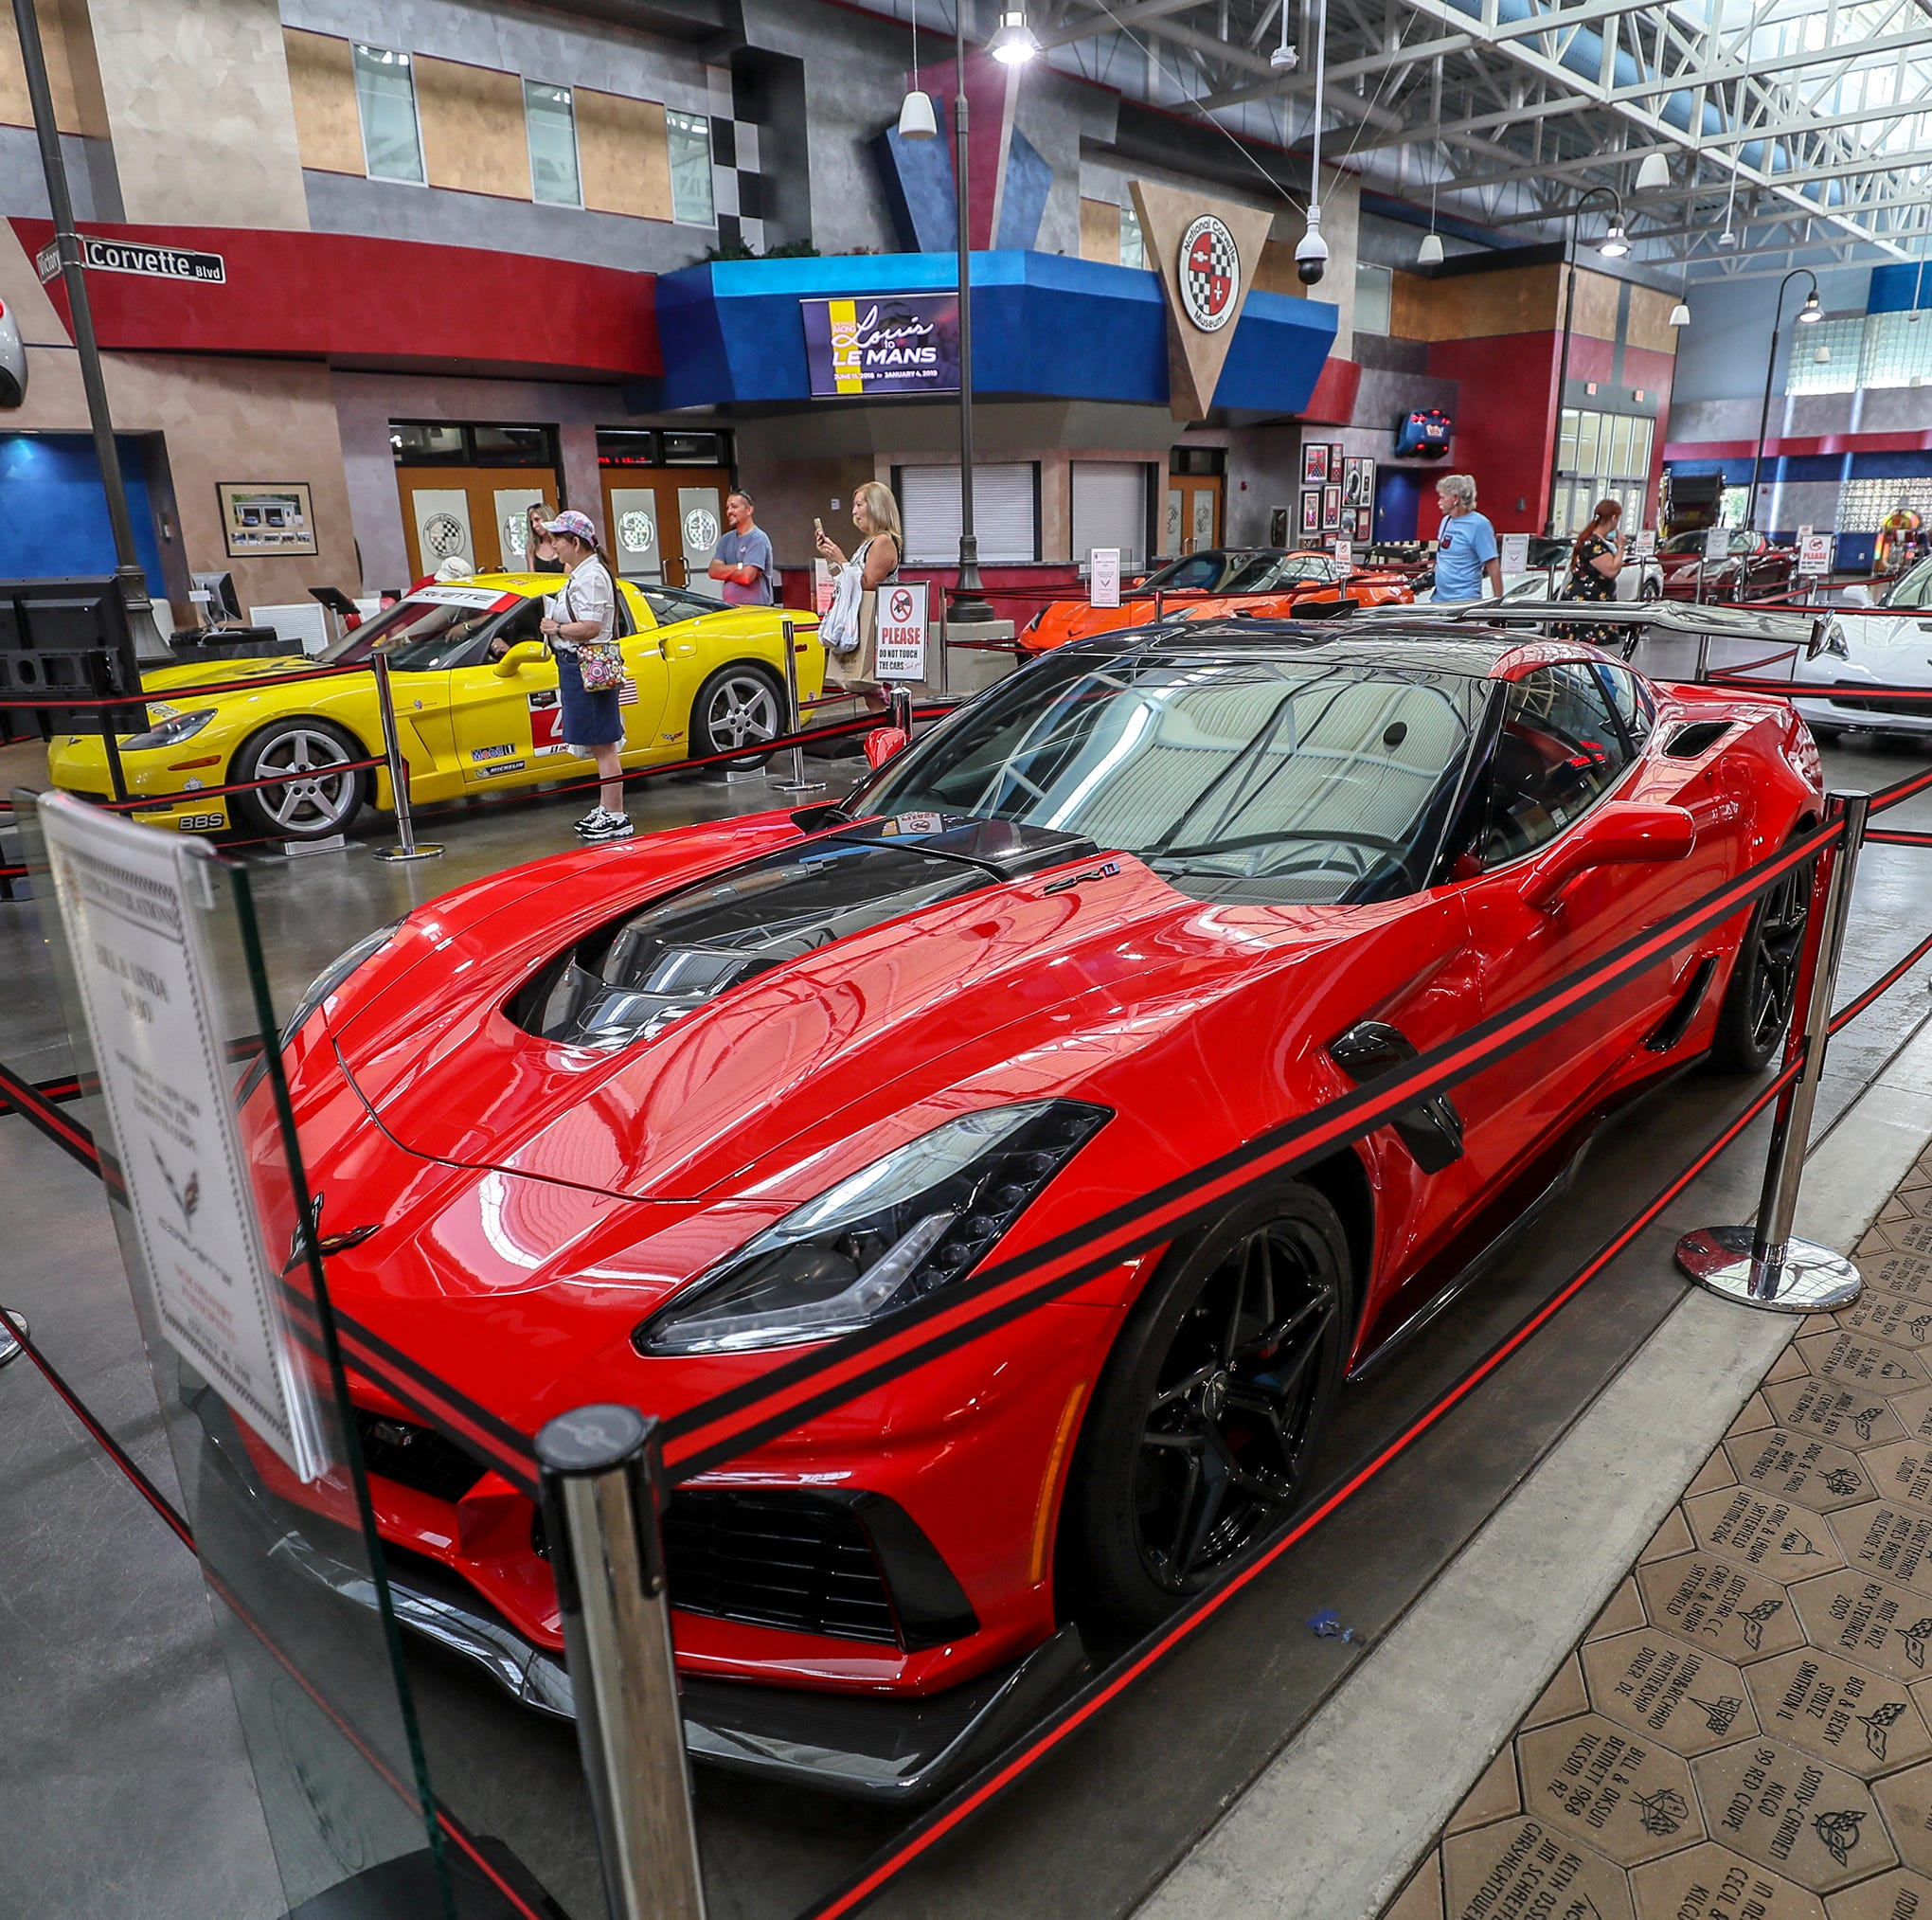 A shiny C7 Corvette on display at the National Corvette Museum in Bowling Green.